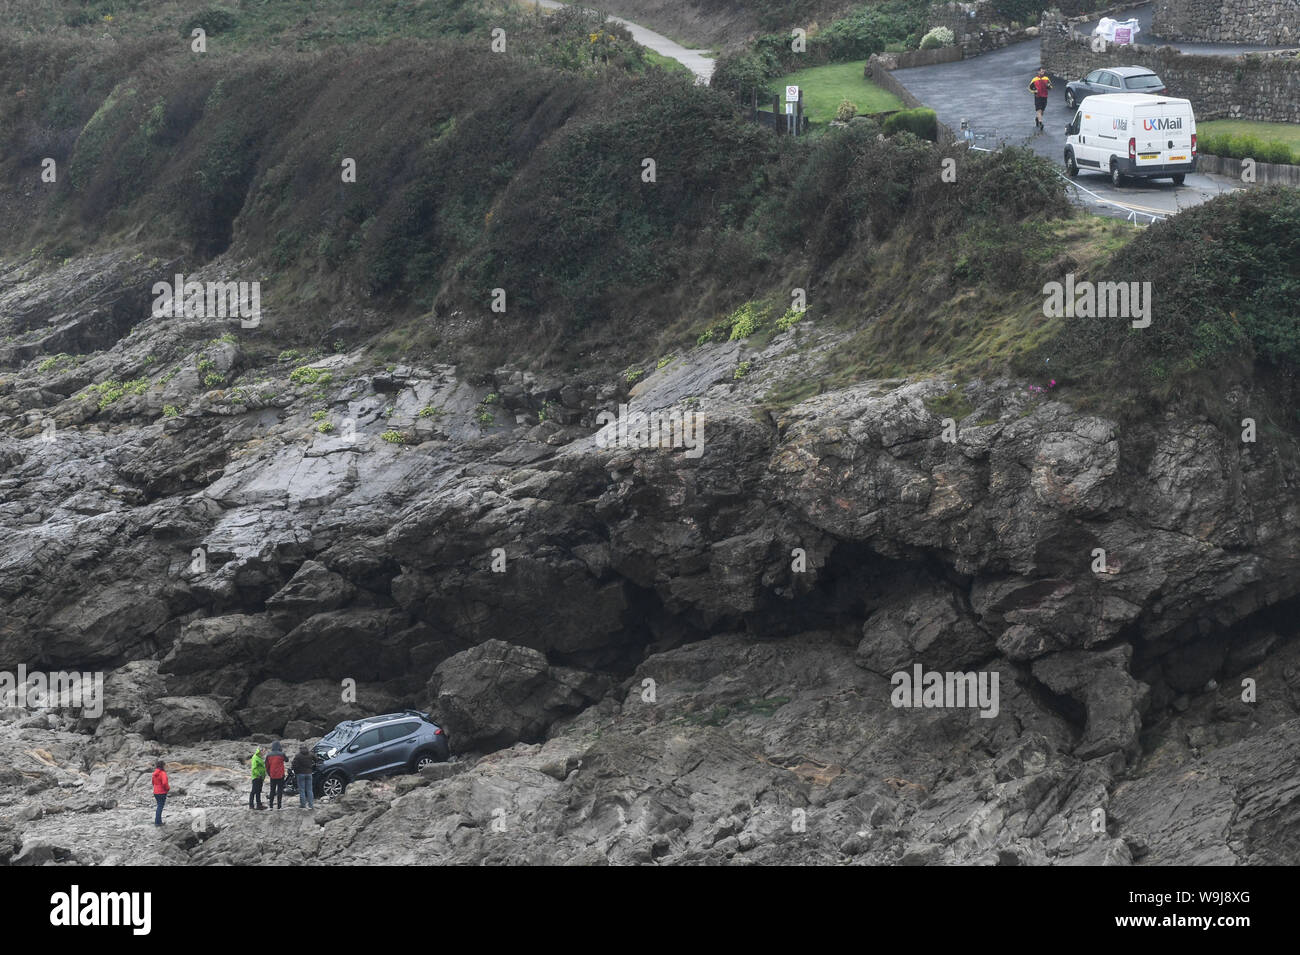 Swansea, Wales, UK. 14th August, 2019.  A damaged car remains stranded at the bottom of cliffs at Limeslade Bay, near Mumbles, Swansea, south Wales after it plunged into the sea on Tuesday morning. The driver was taken to hospital and detained under the Mental Health Act but was not seriously hurt.  Credit : Robert Melen/Alamy Live News. Stock Photo